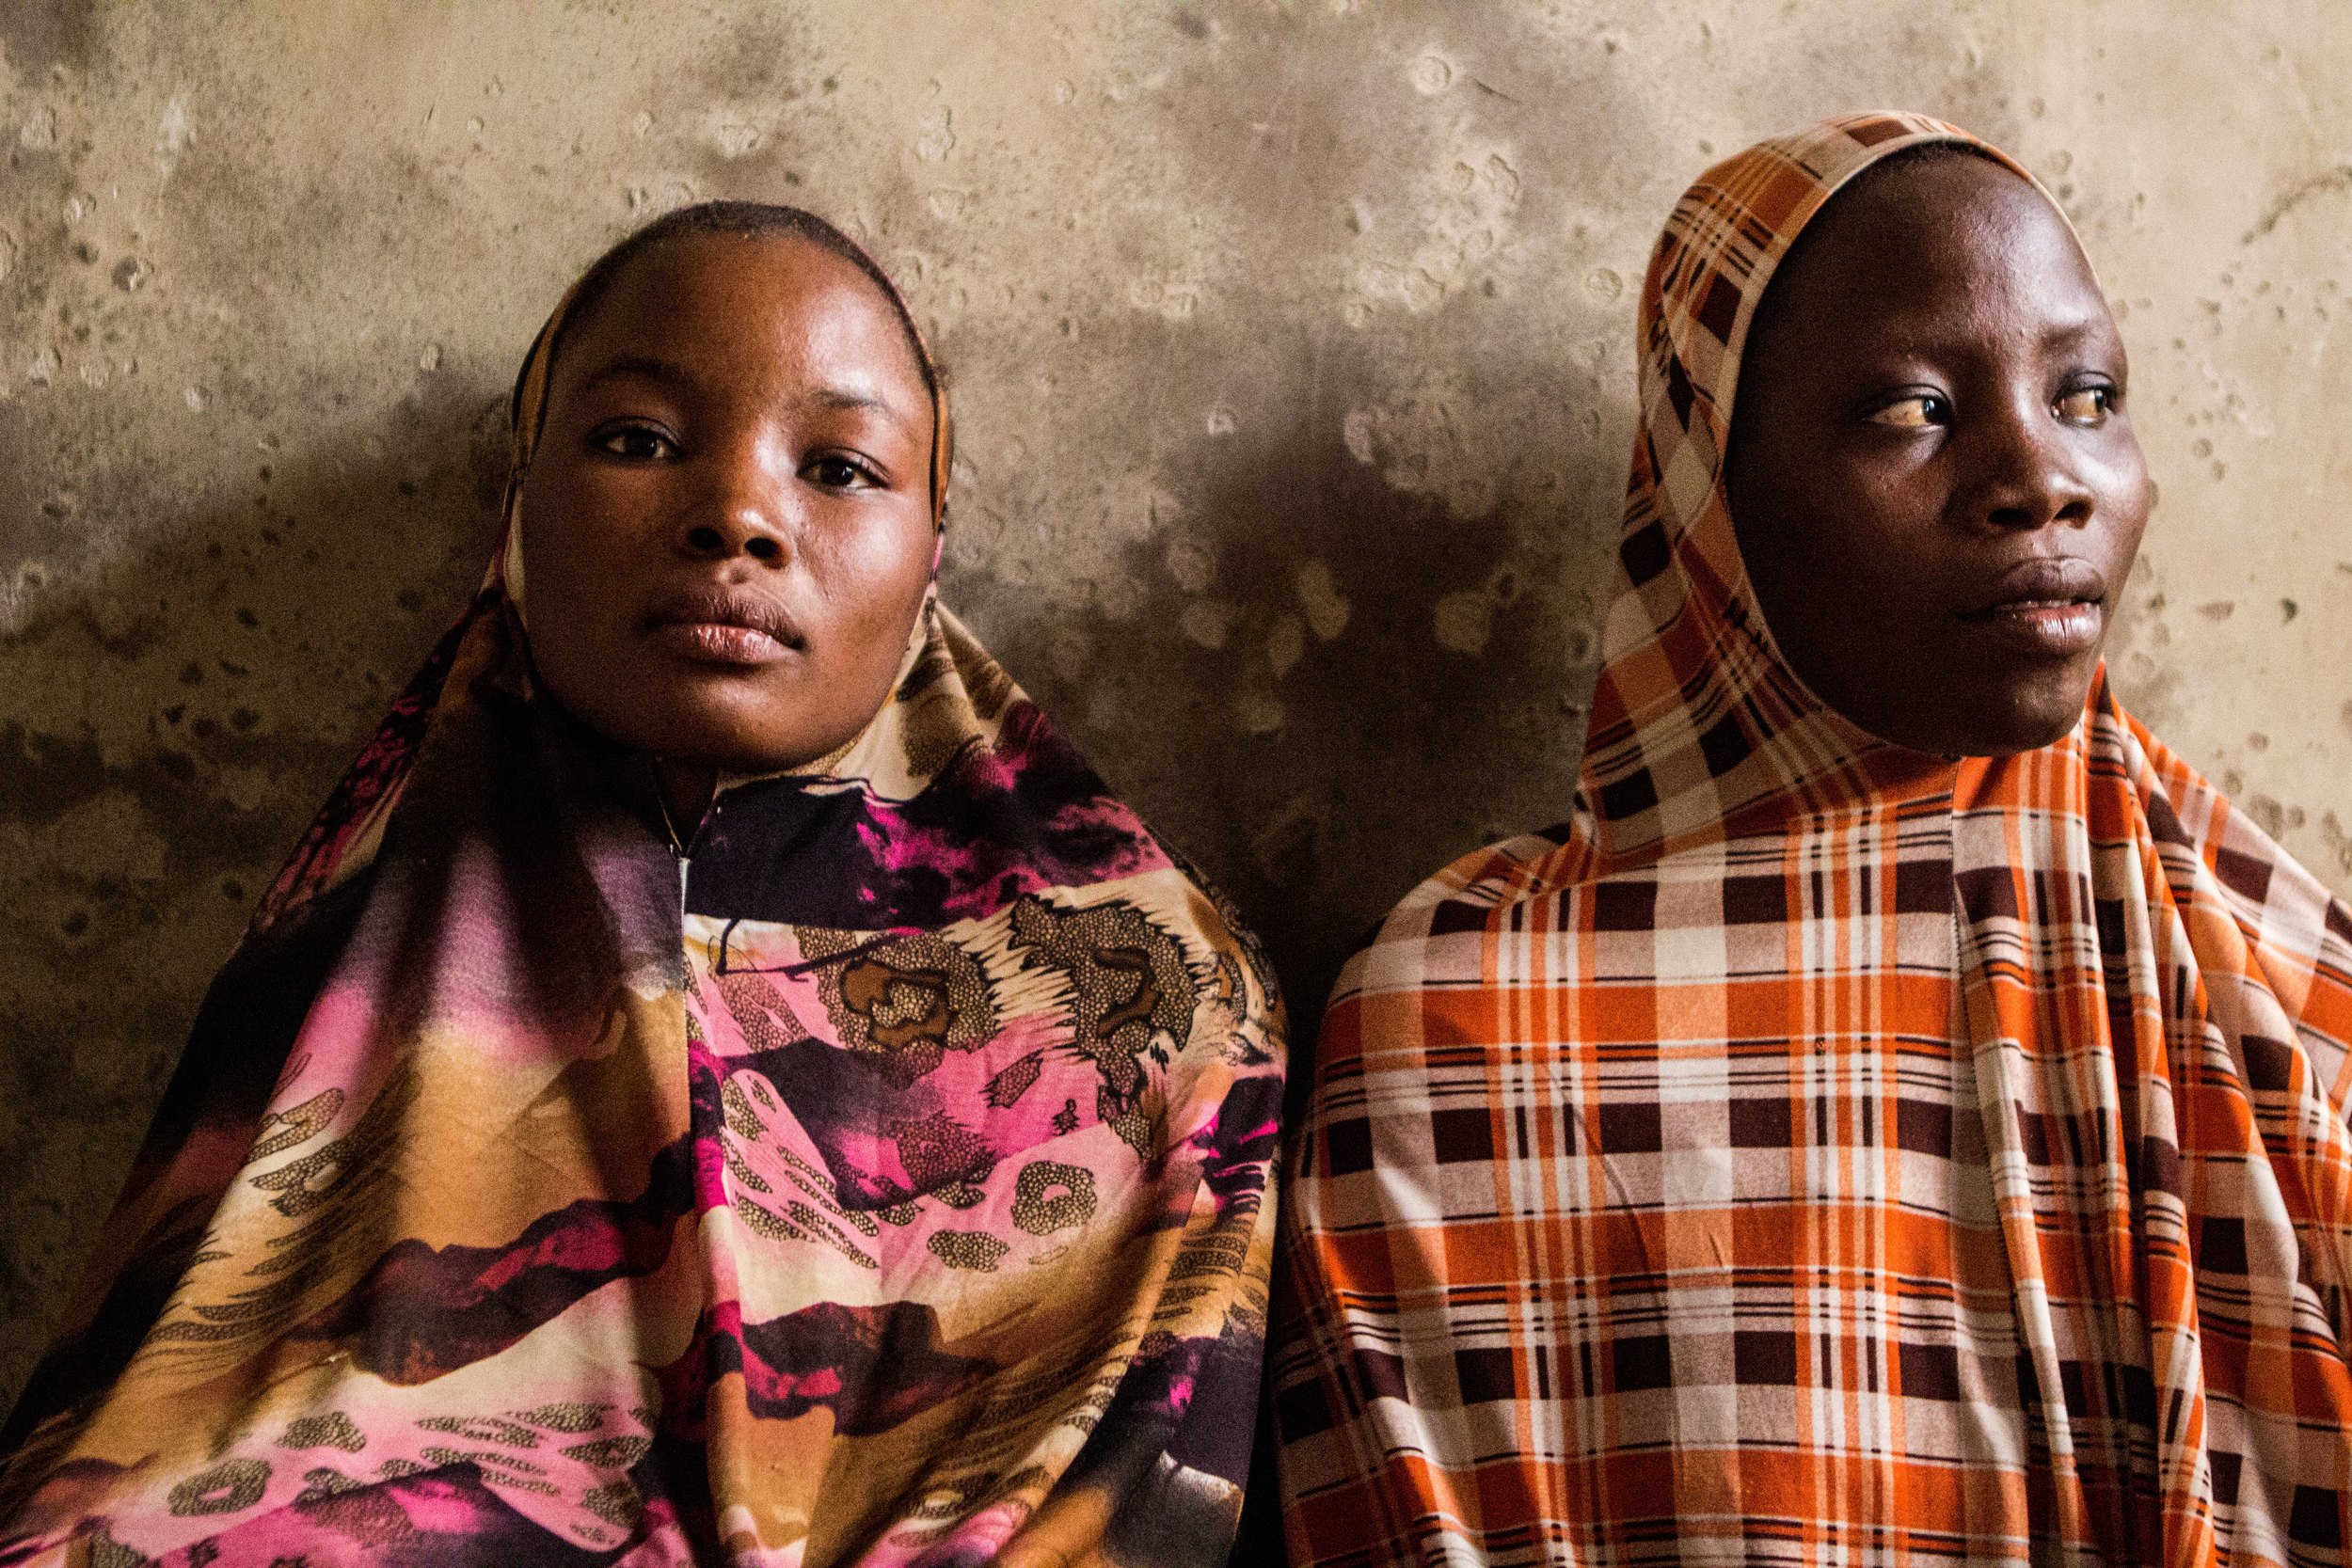 """Yola, Nigeria. March 7 2015. Hadiza Ibrahim, 22 and Rukayya, 20 stayed in their hometown after Boko Haram militants attacked and their husband fled for his life.  """"They both wanted to marry me,"""" Hadiza said. """"They said that, since he left, I was part of their property."""""""